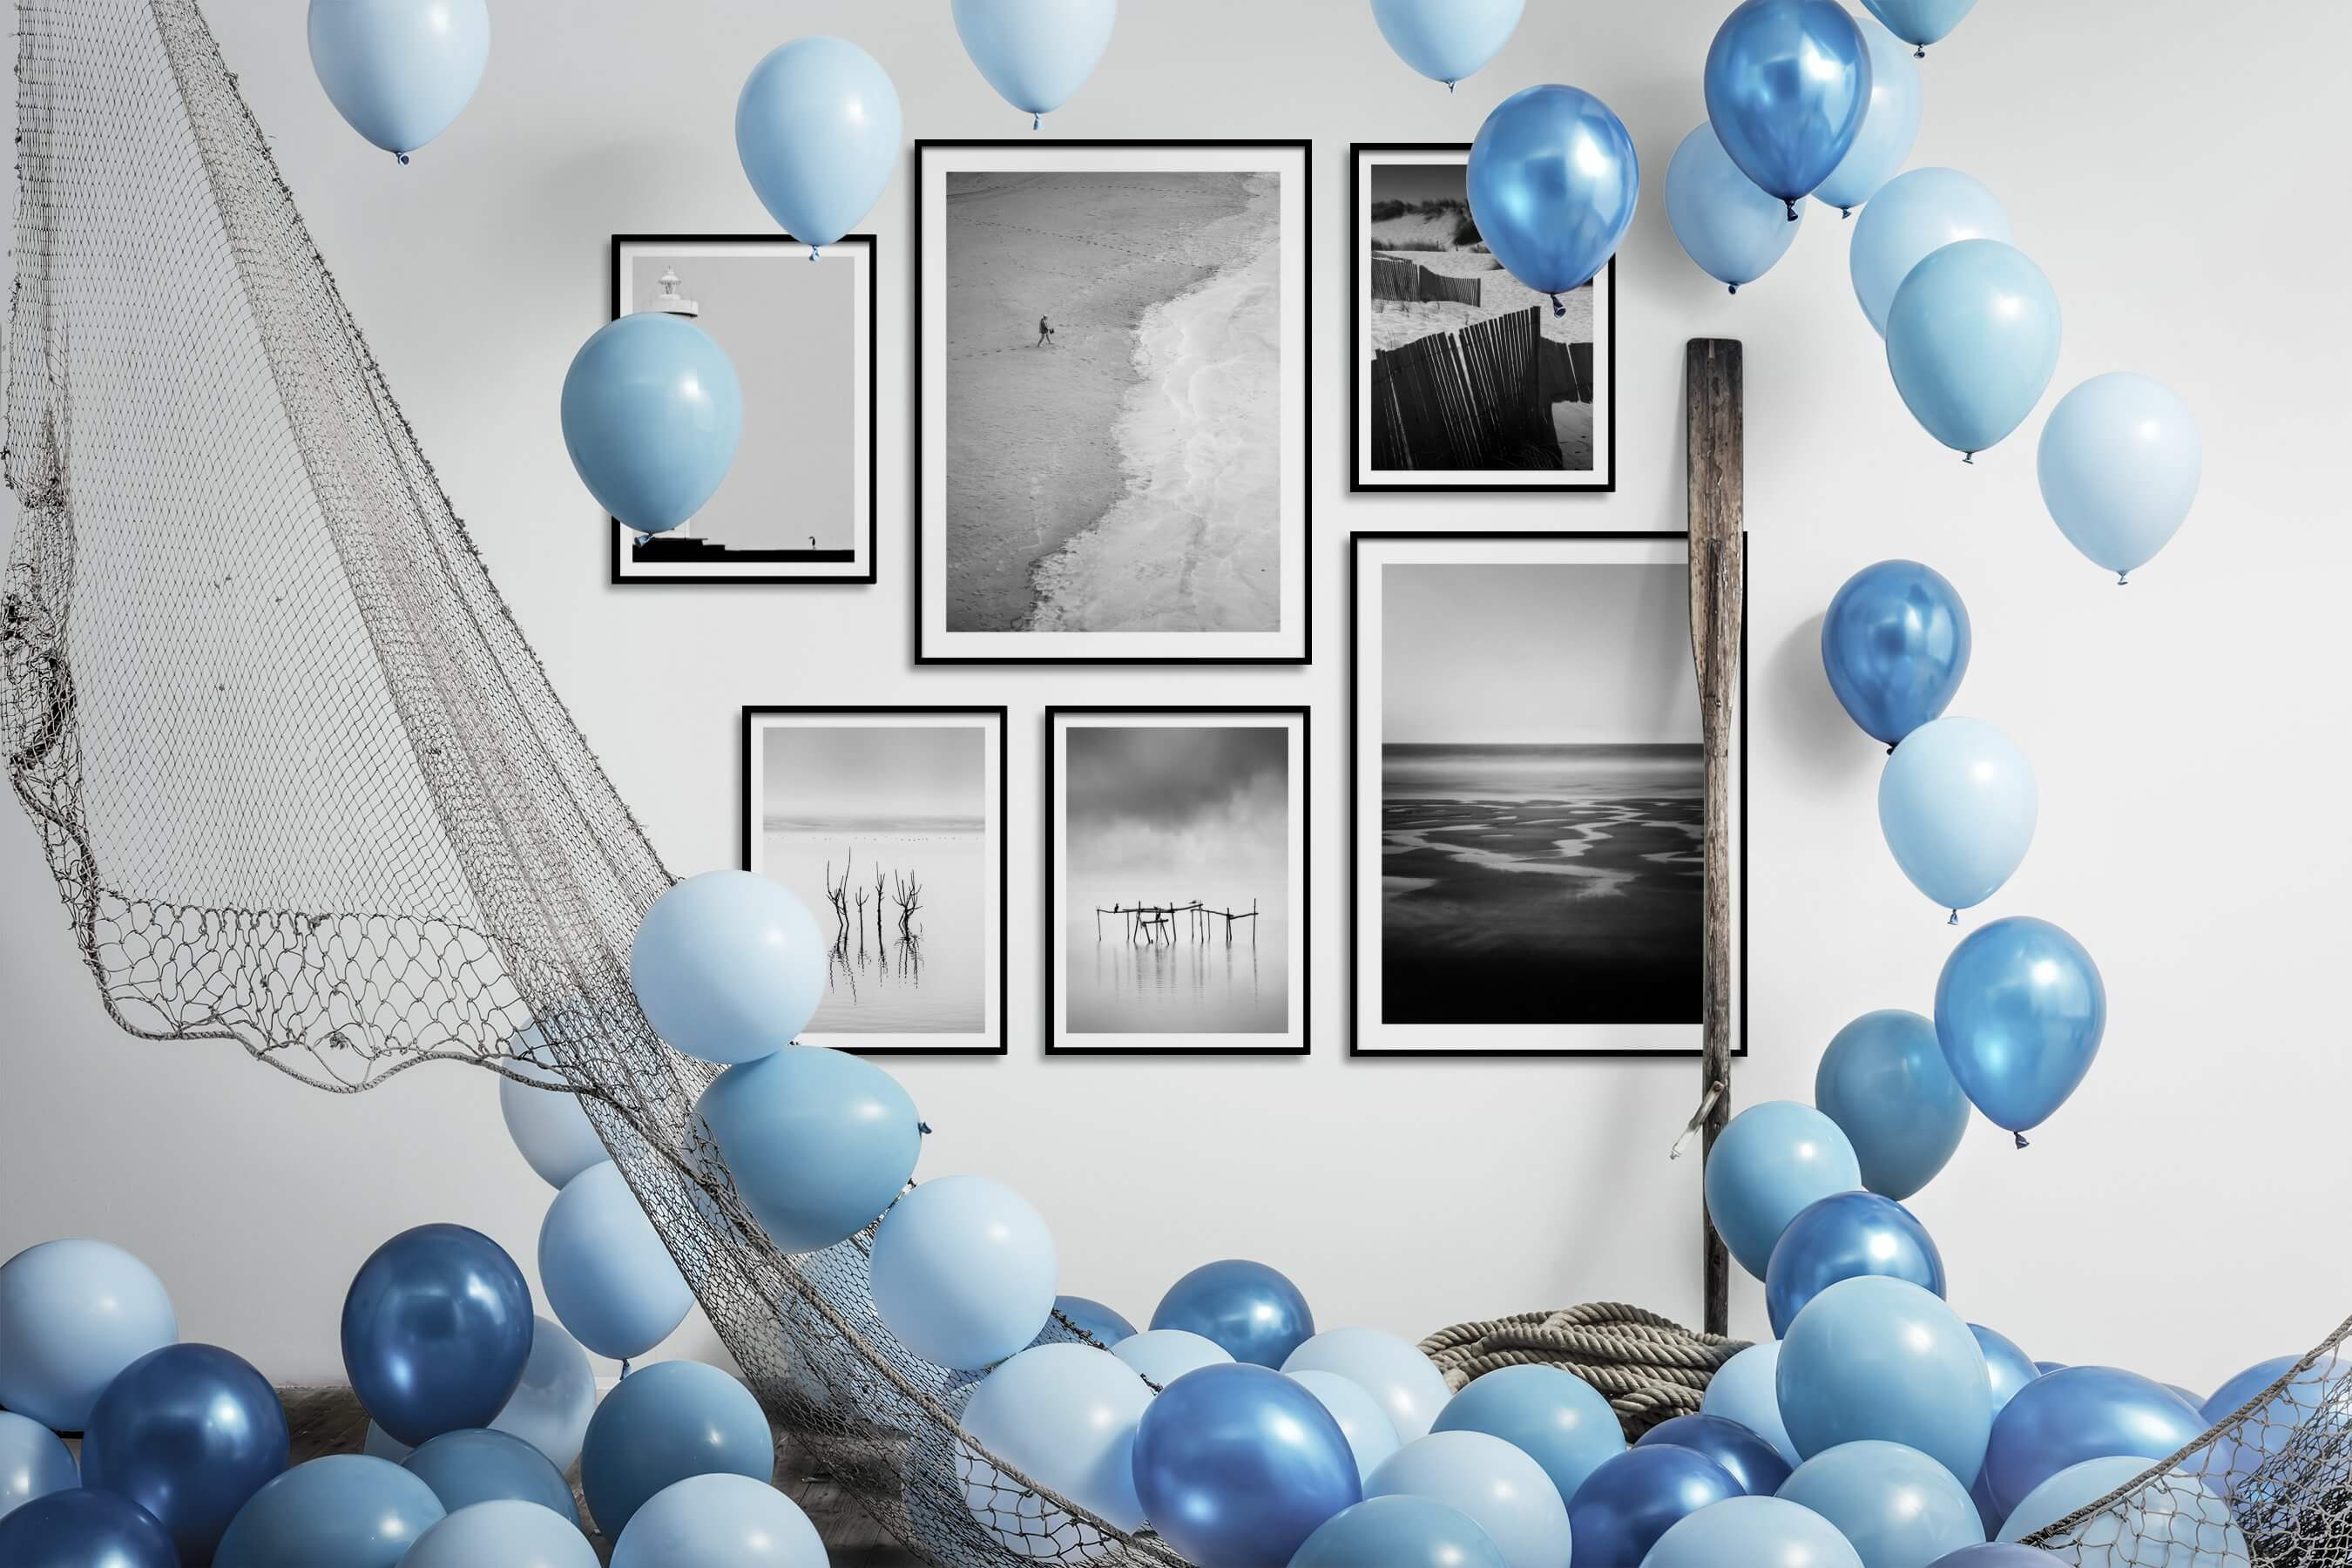 Gallery wall idea with six framed pictures arranged on a wall depicting Black & White, For the Minimalist, Beach & Water, and Mindfulness